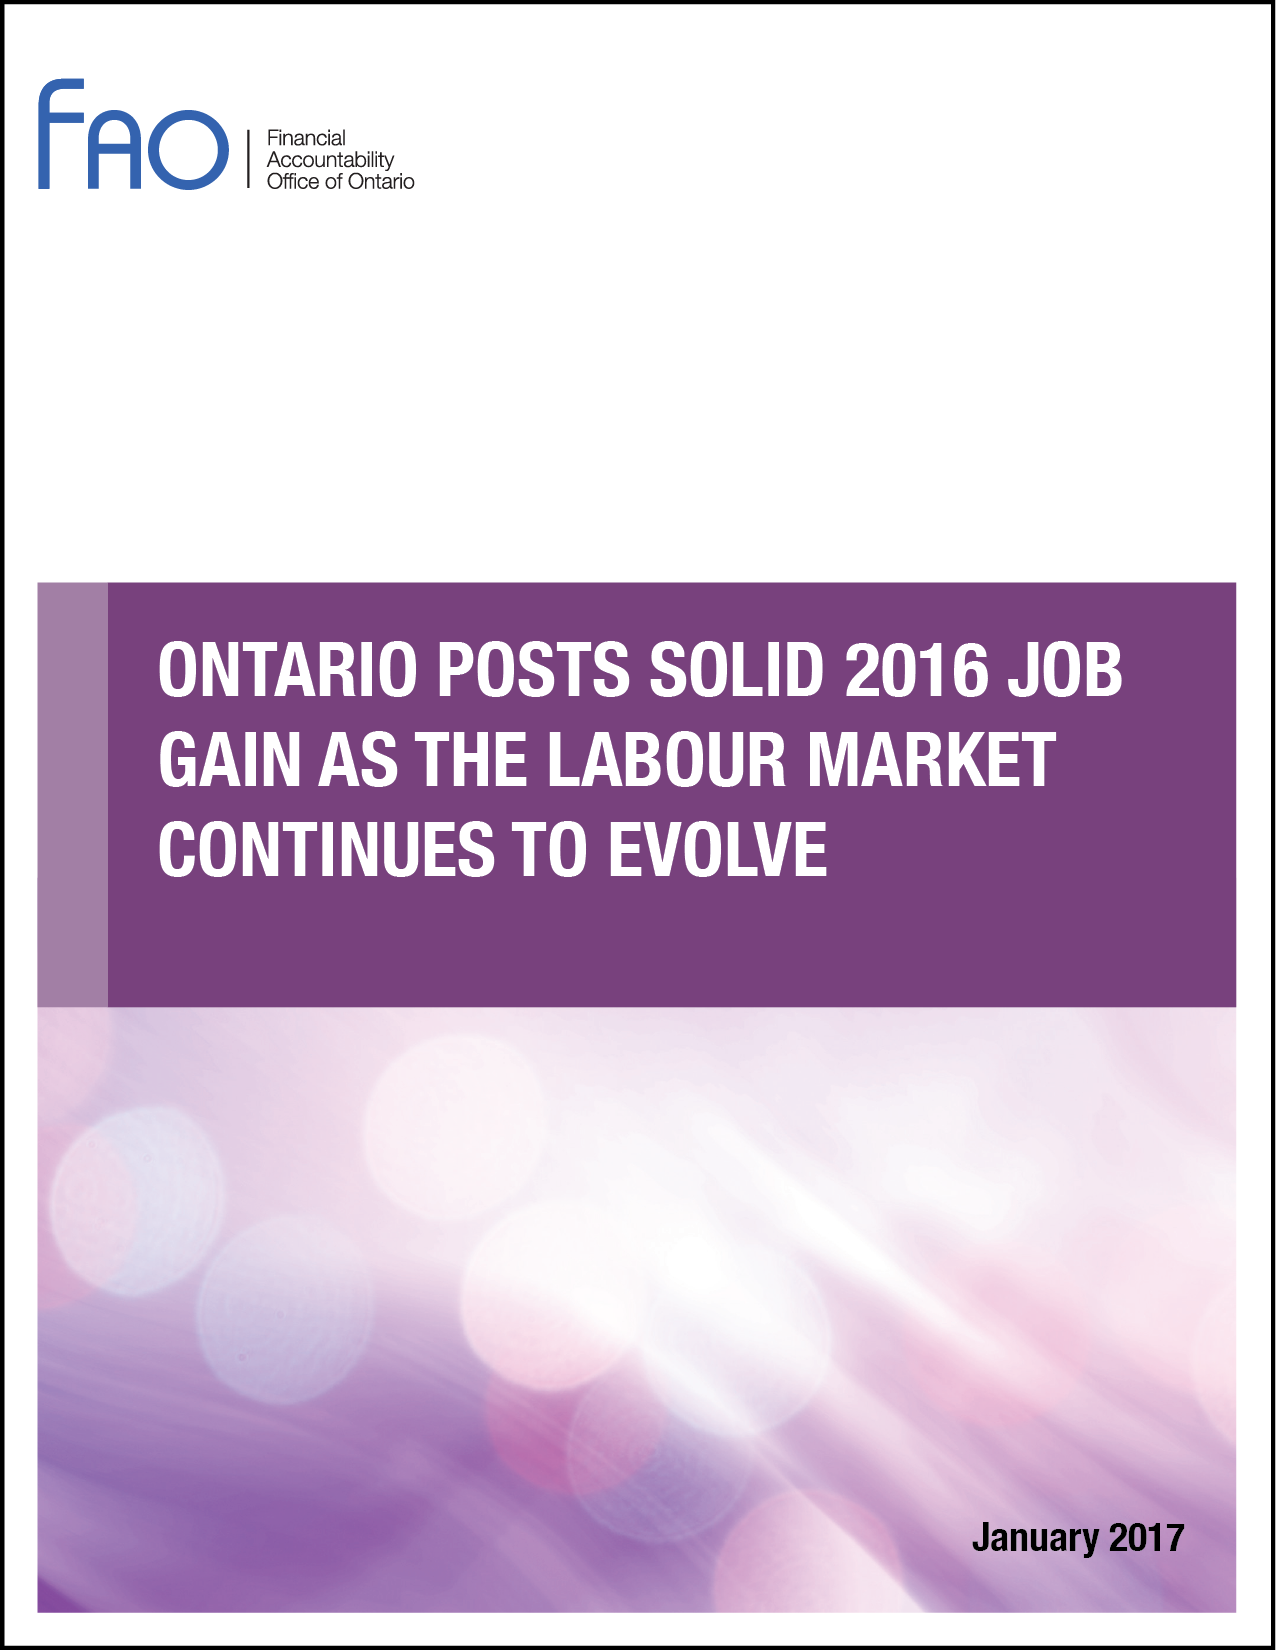 Ontario Posts Solid 2016 Job Gain as the Labour Market Continues to Evolve